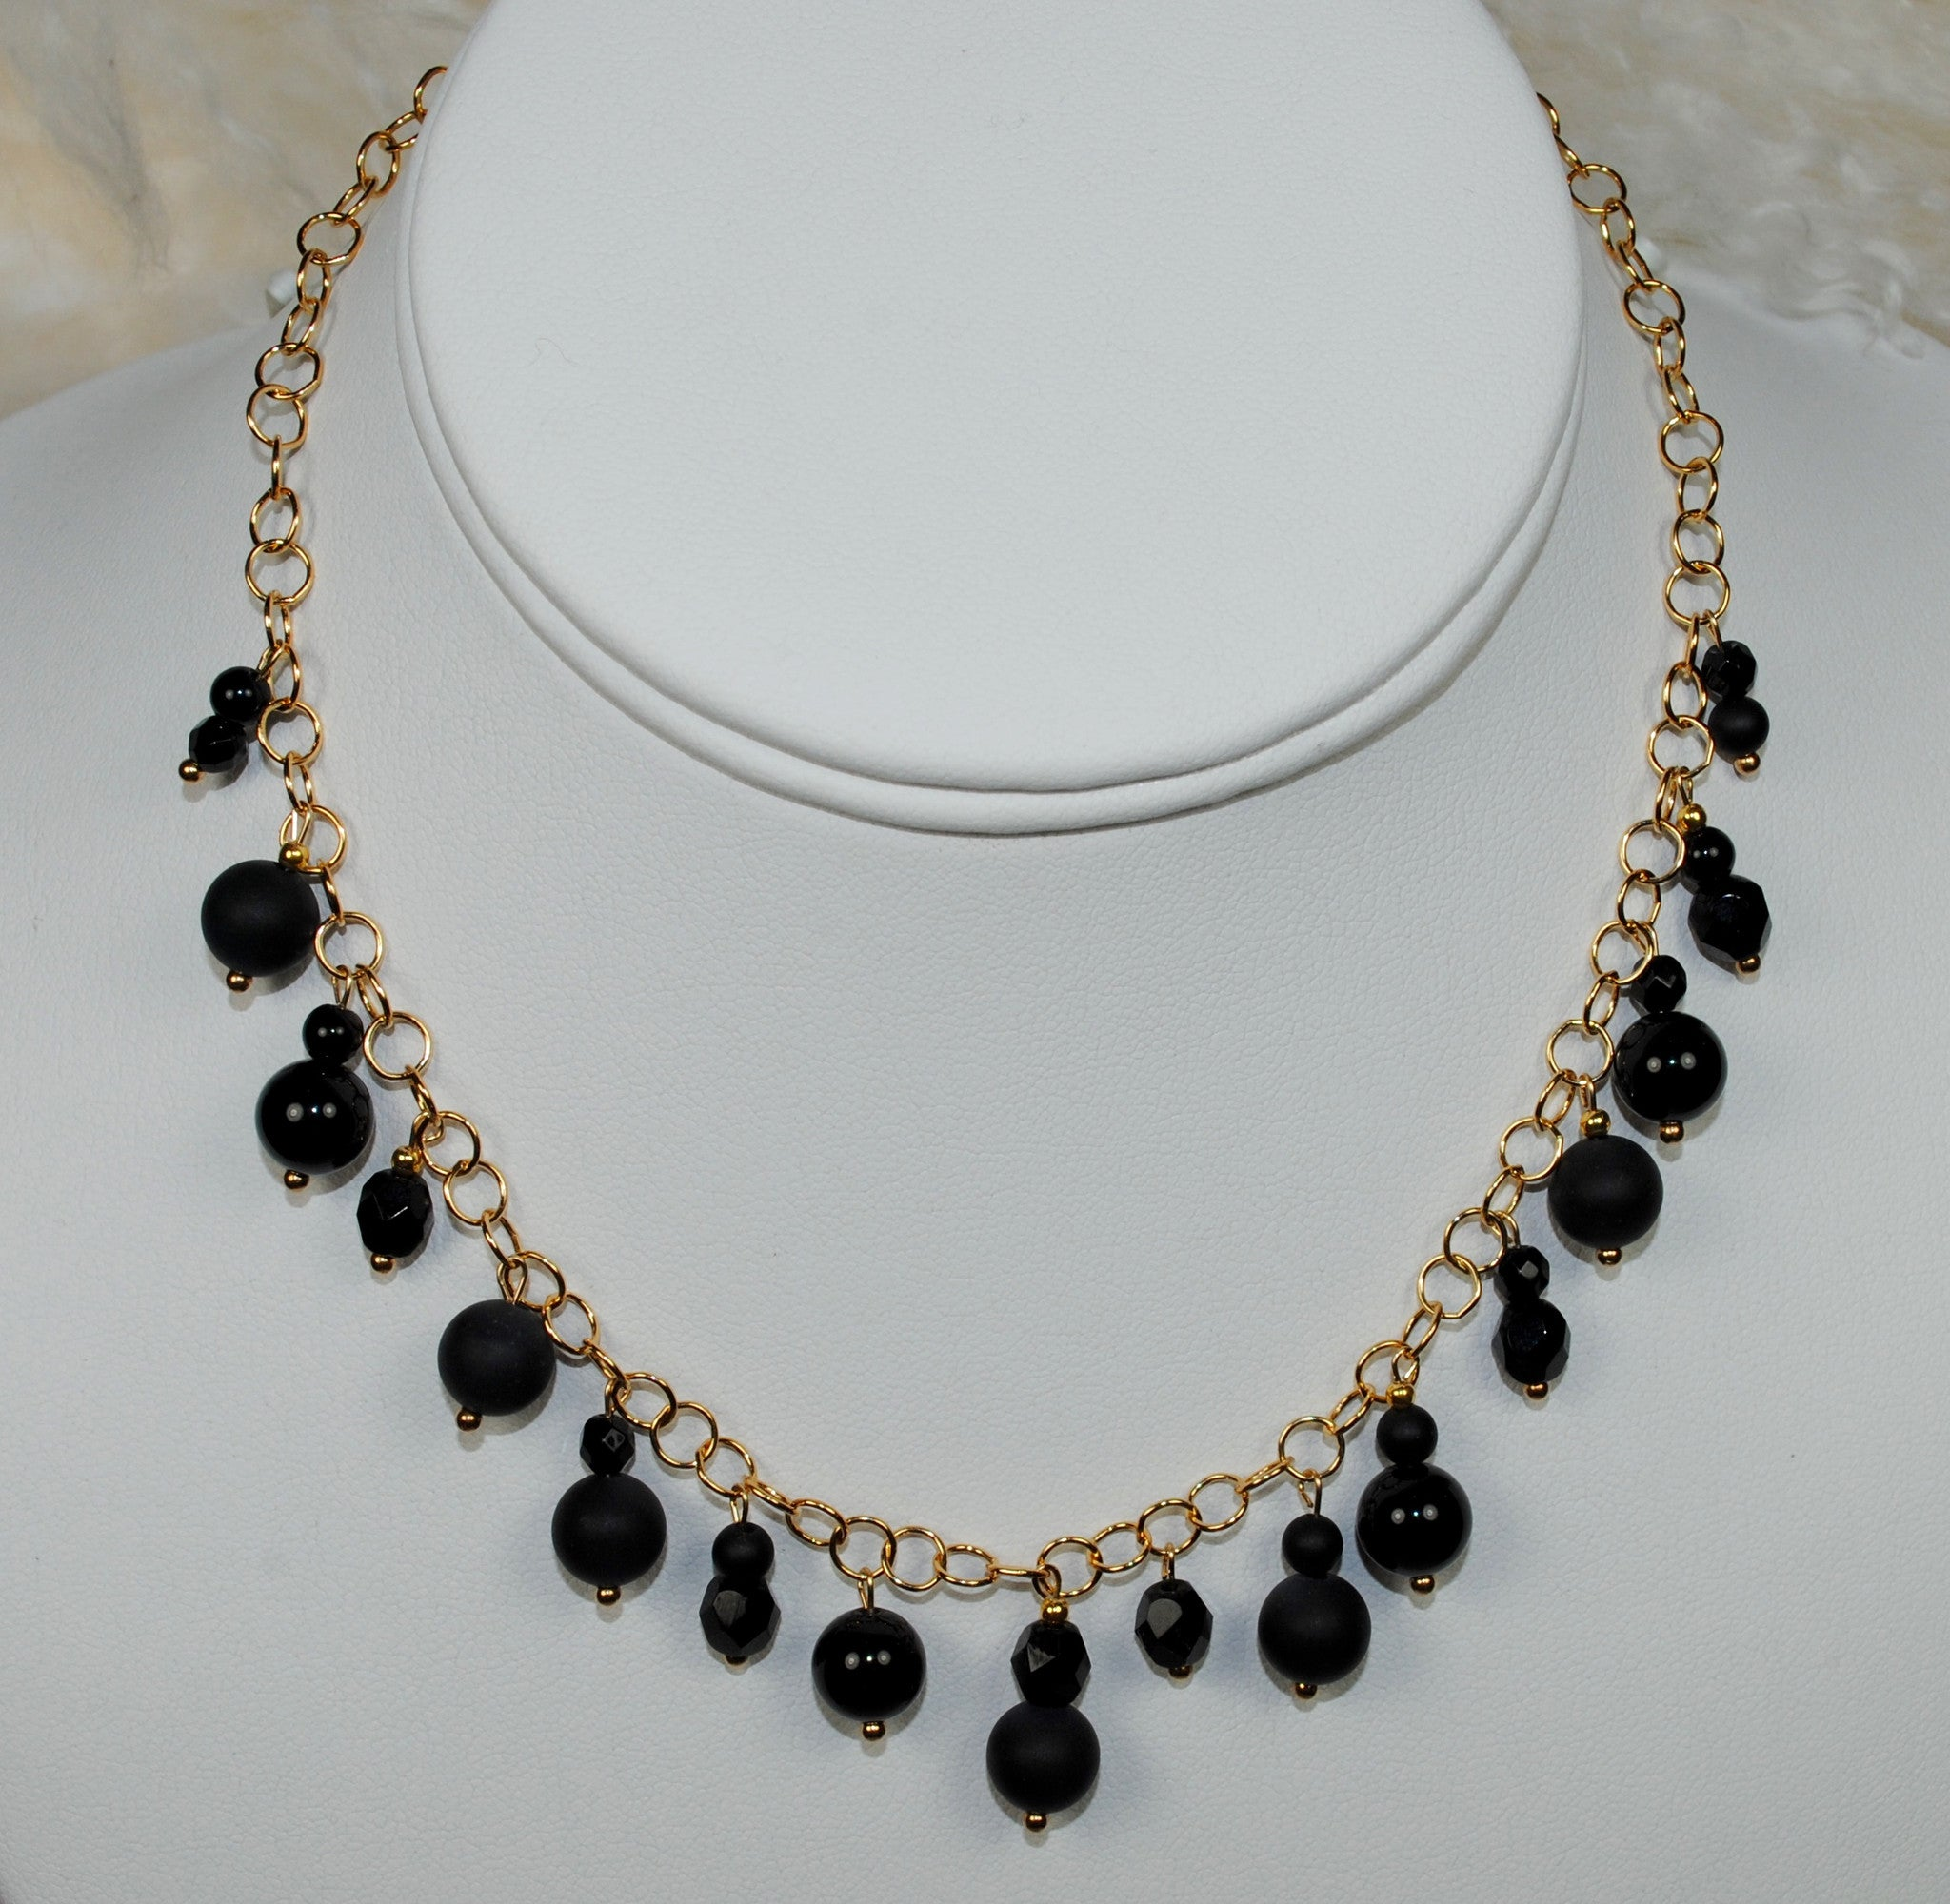 Gold Chain Necklace w/ Black Drops